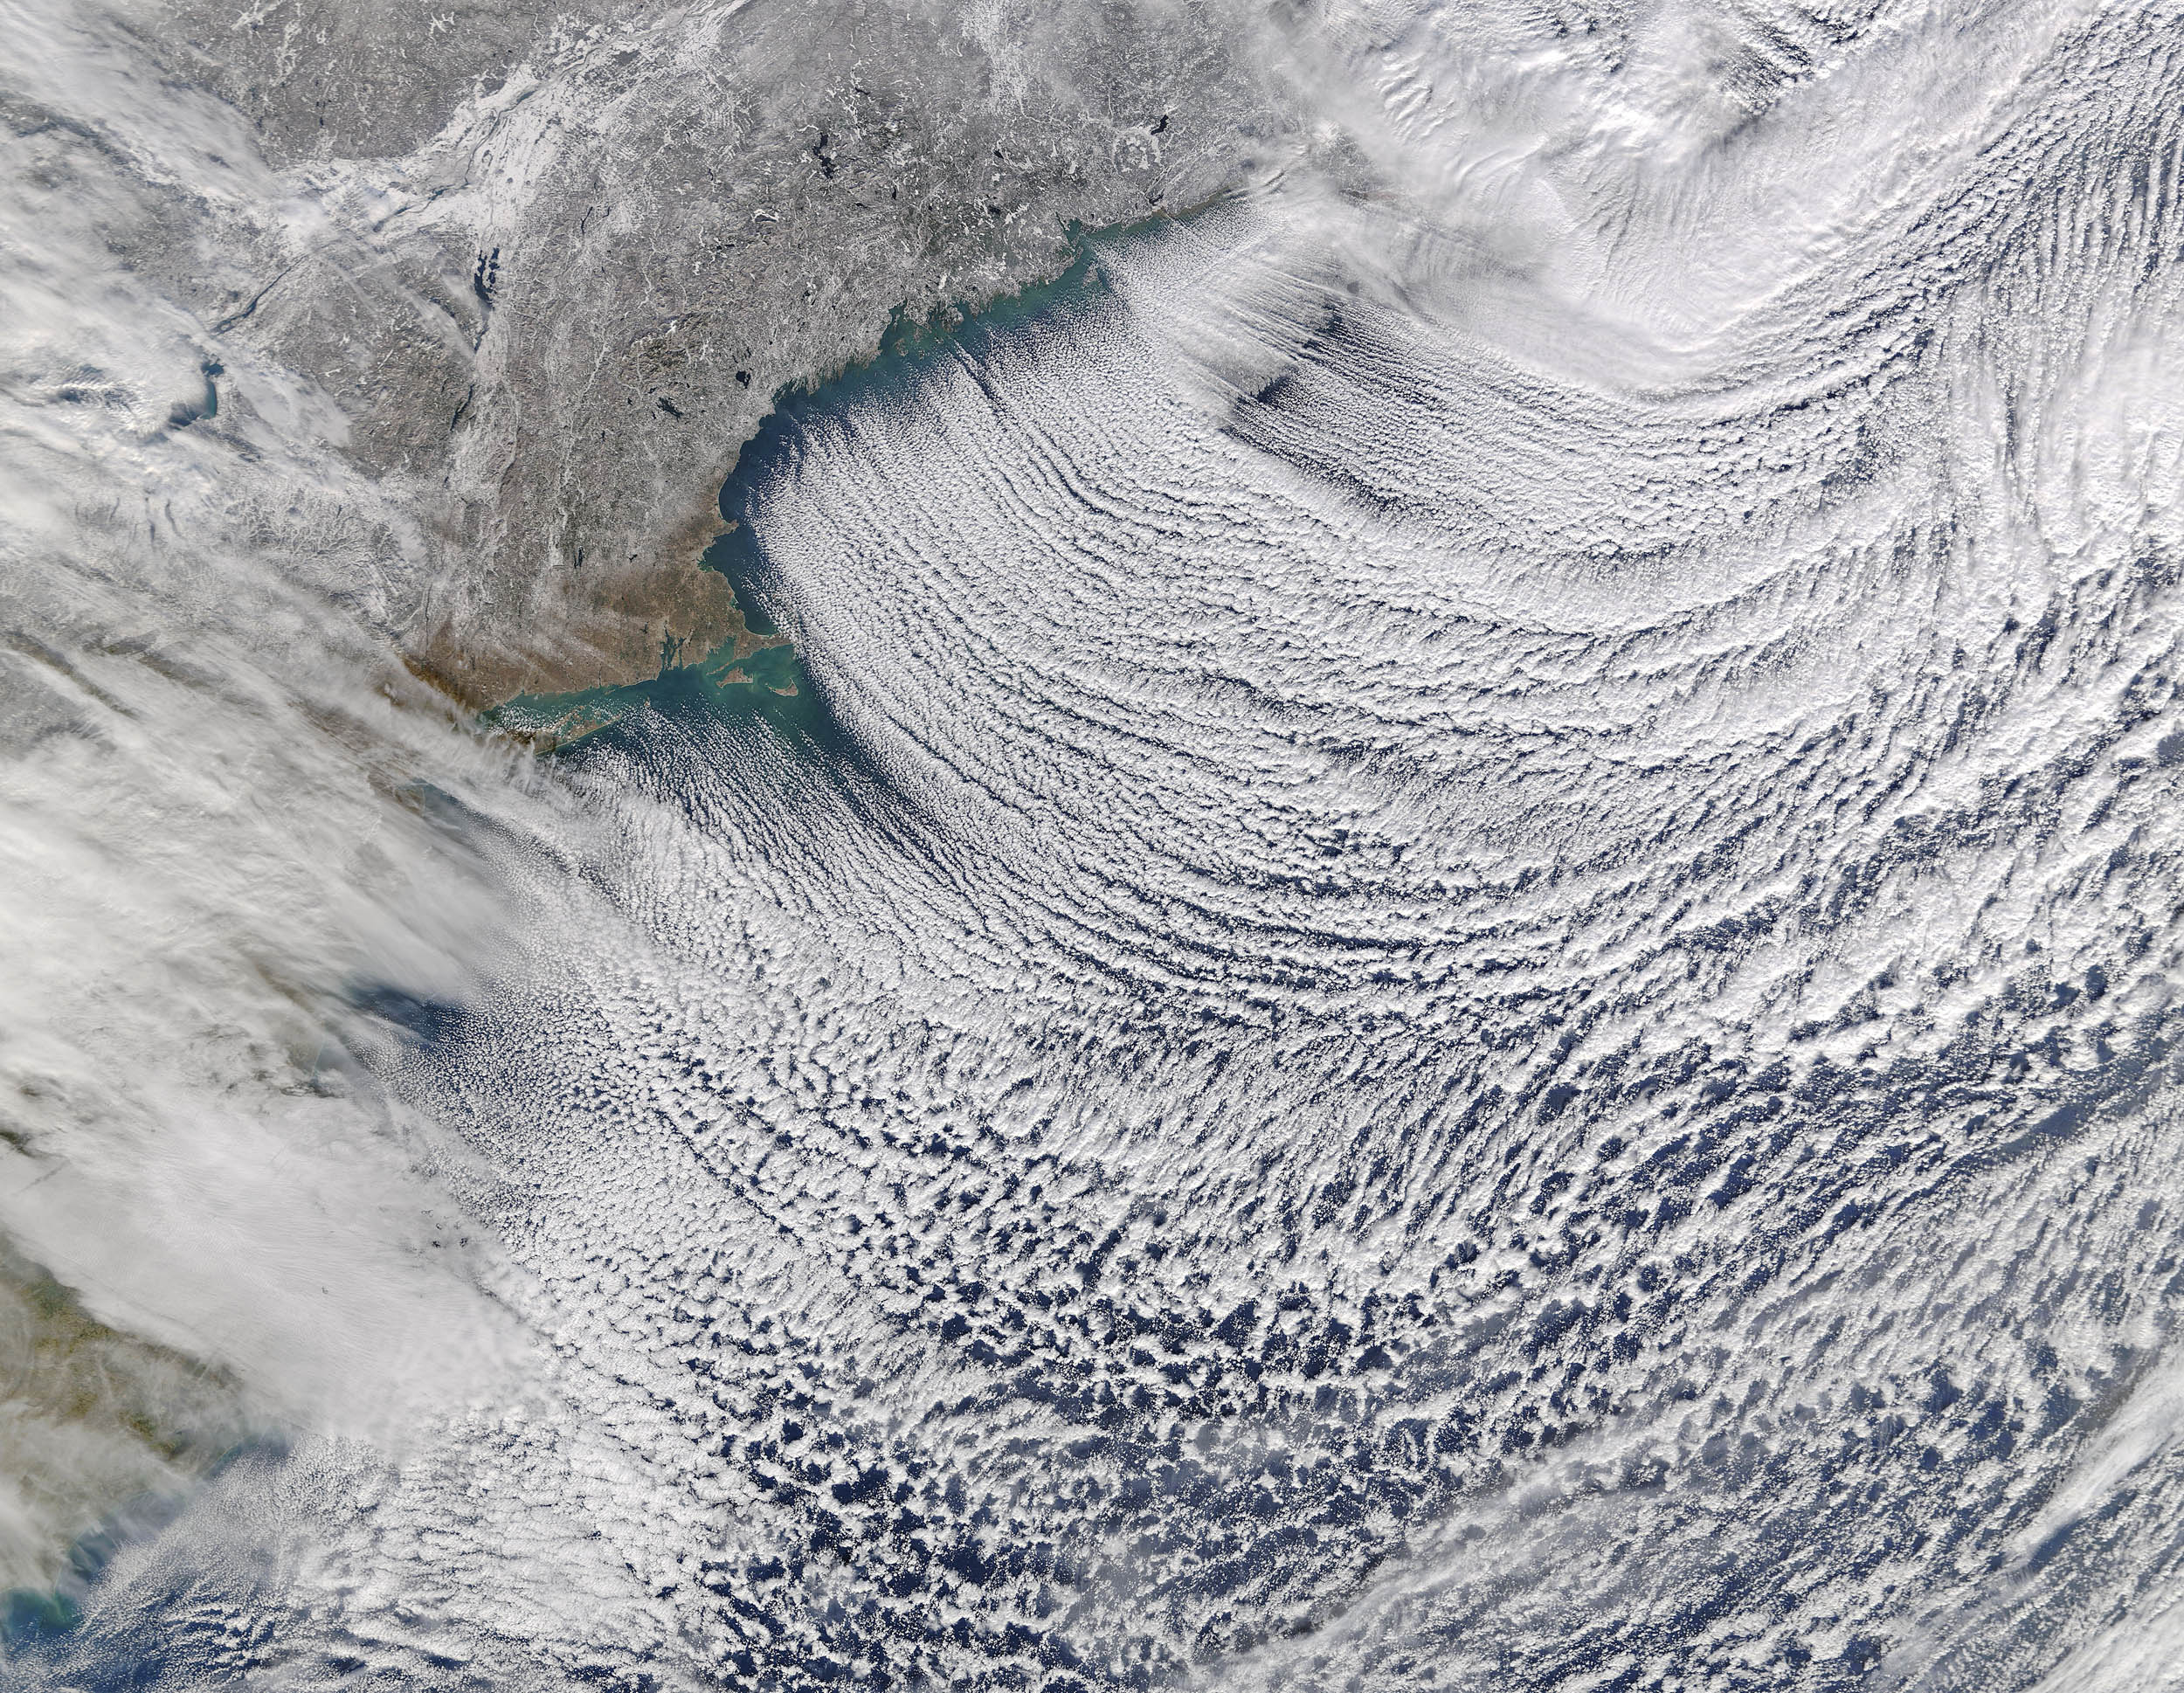 Cloud streets flowing off the northeastern US coast